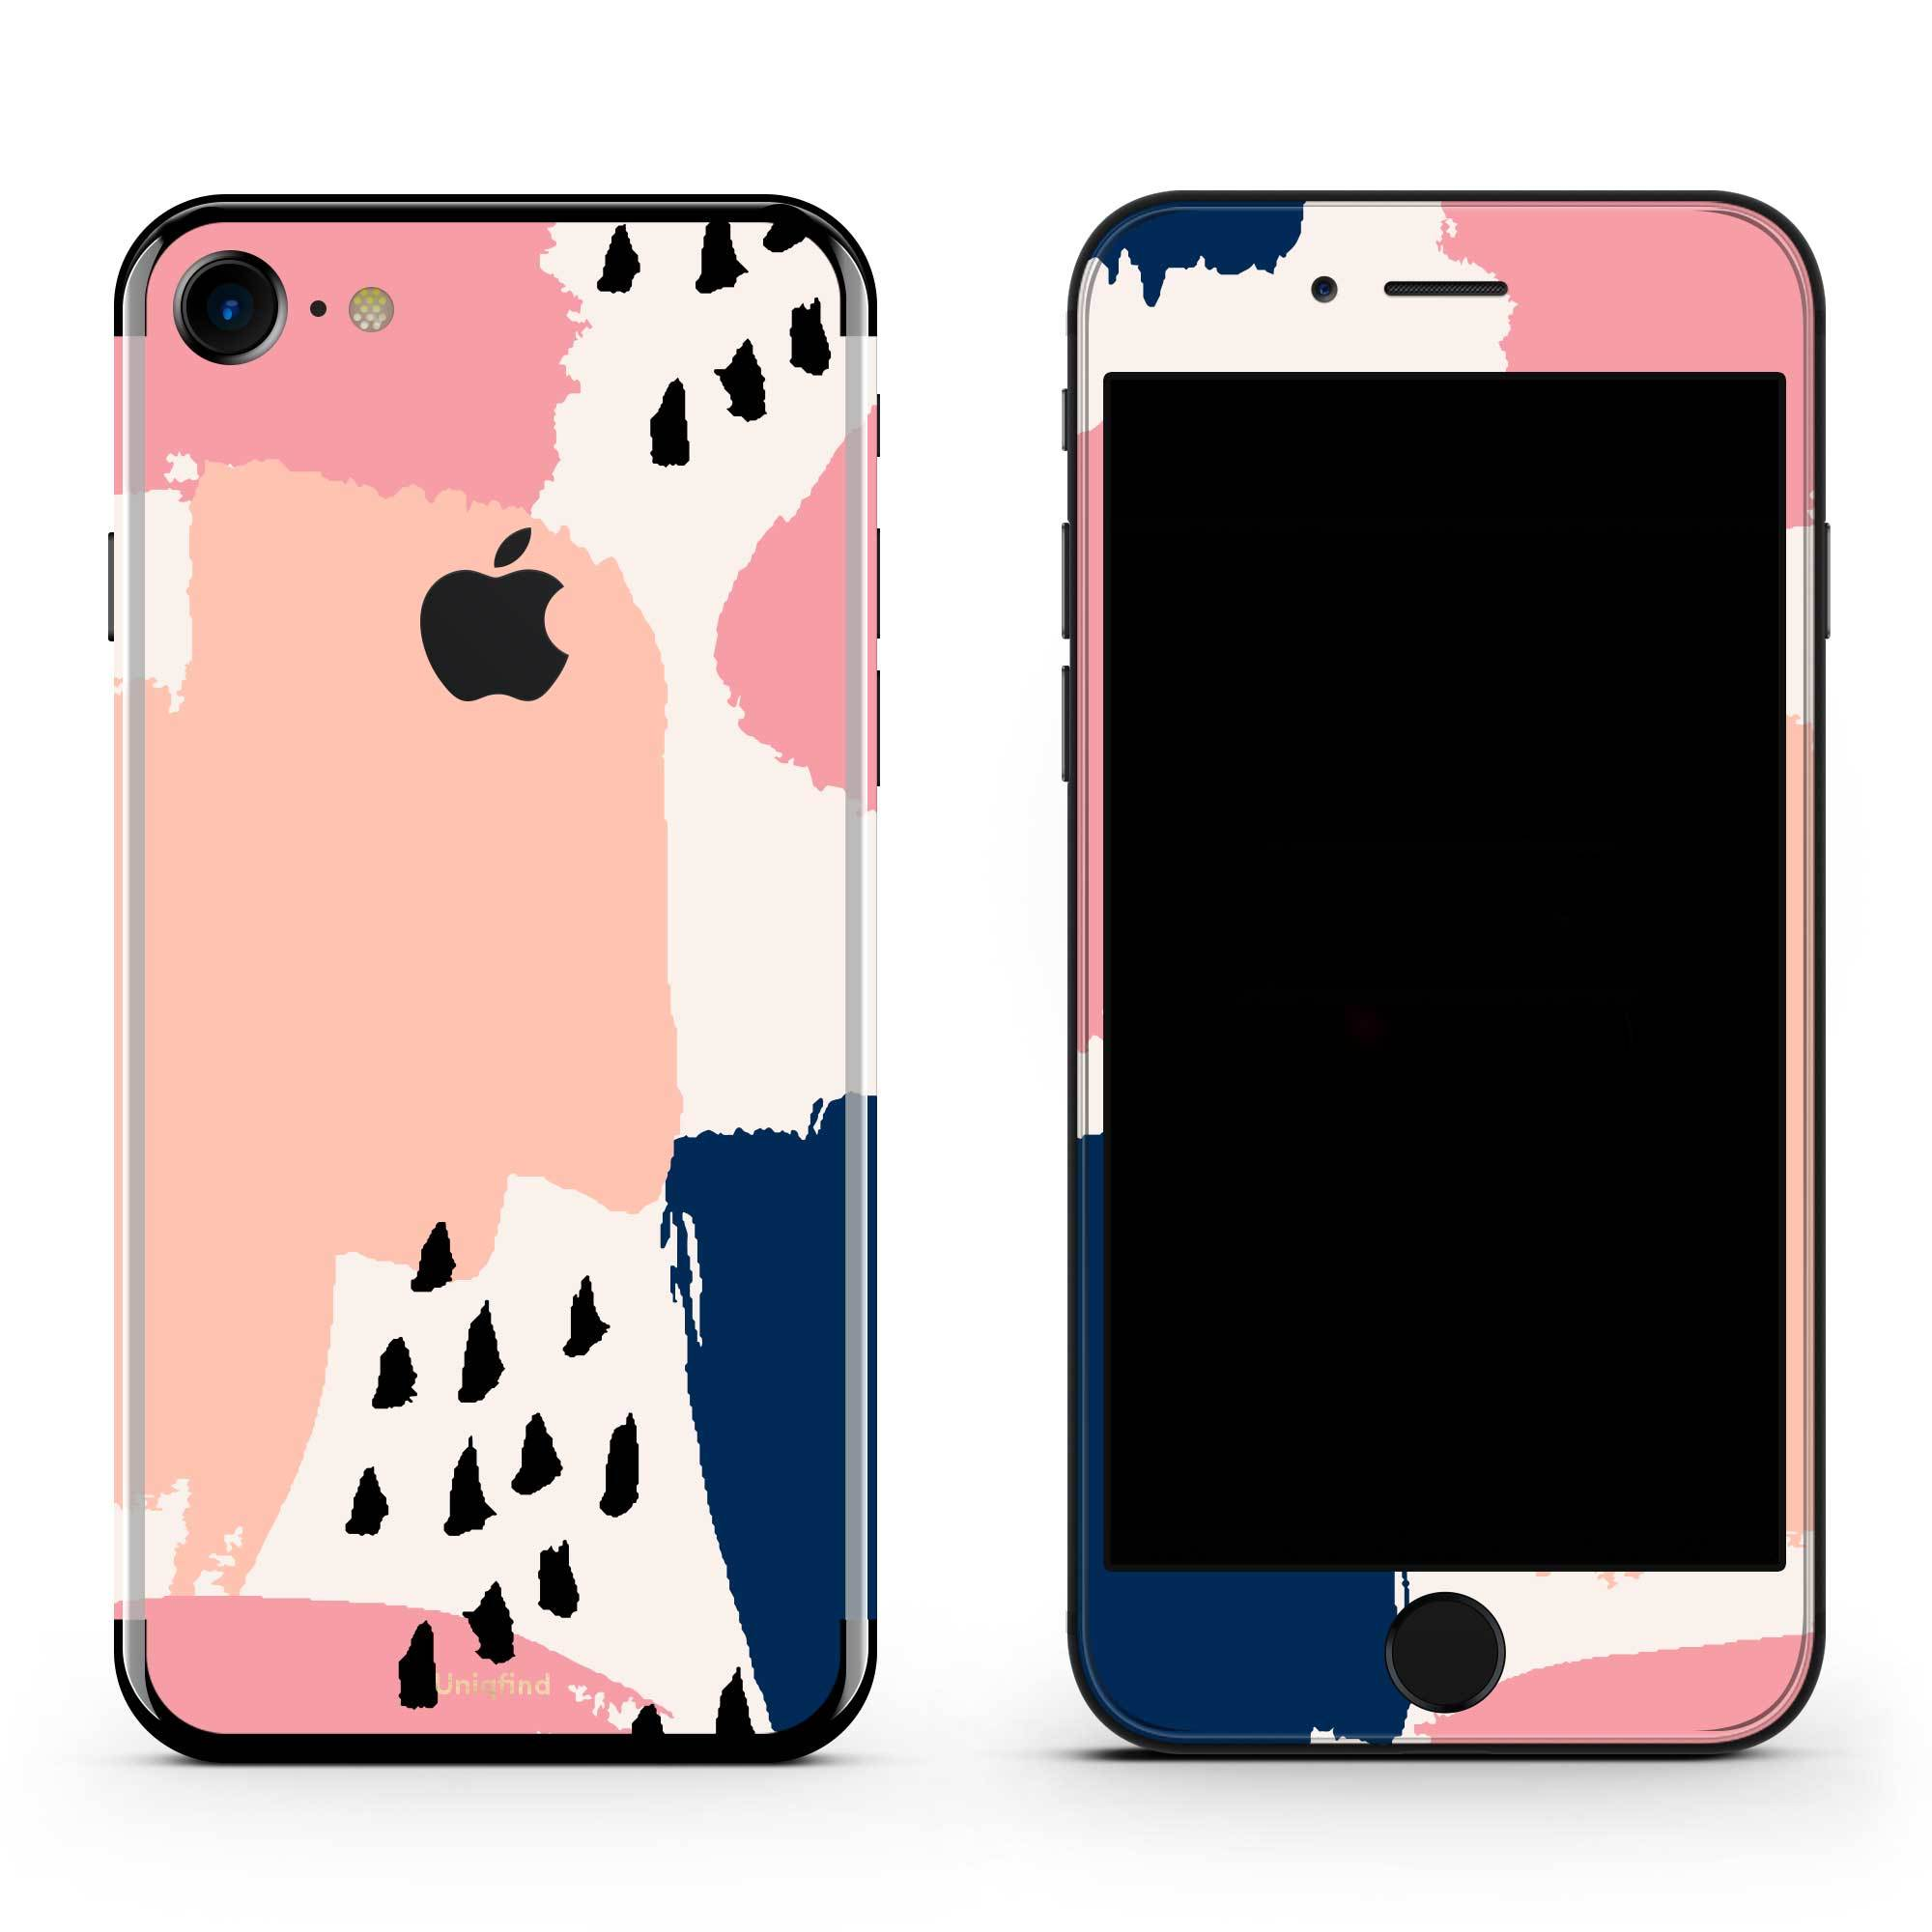 Miami Vice iPhone 8 Skin + Case